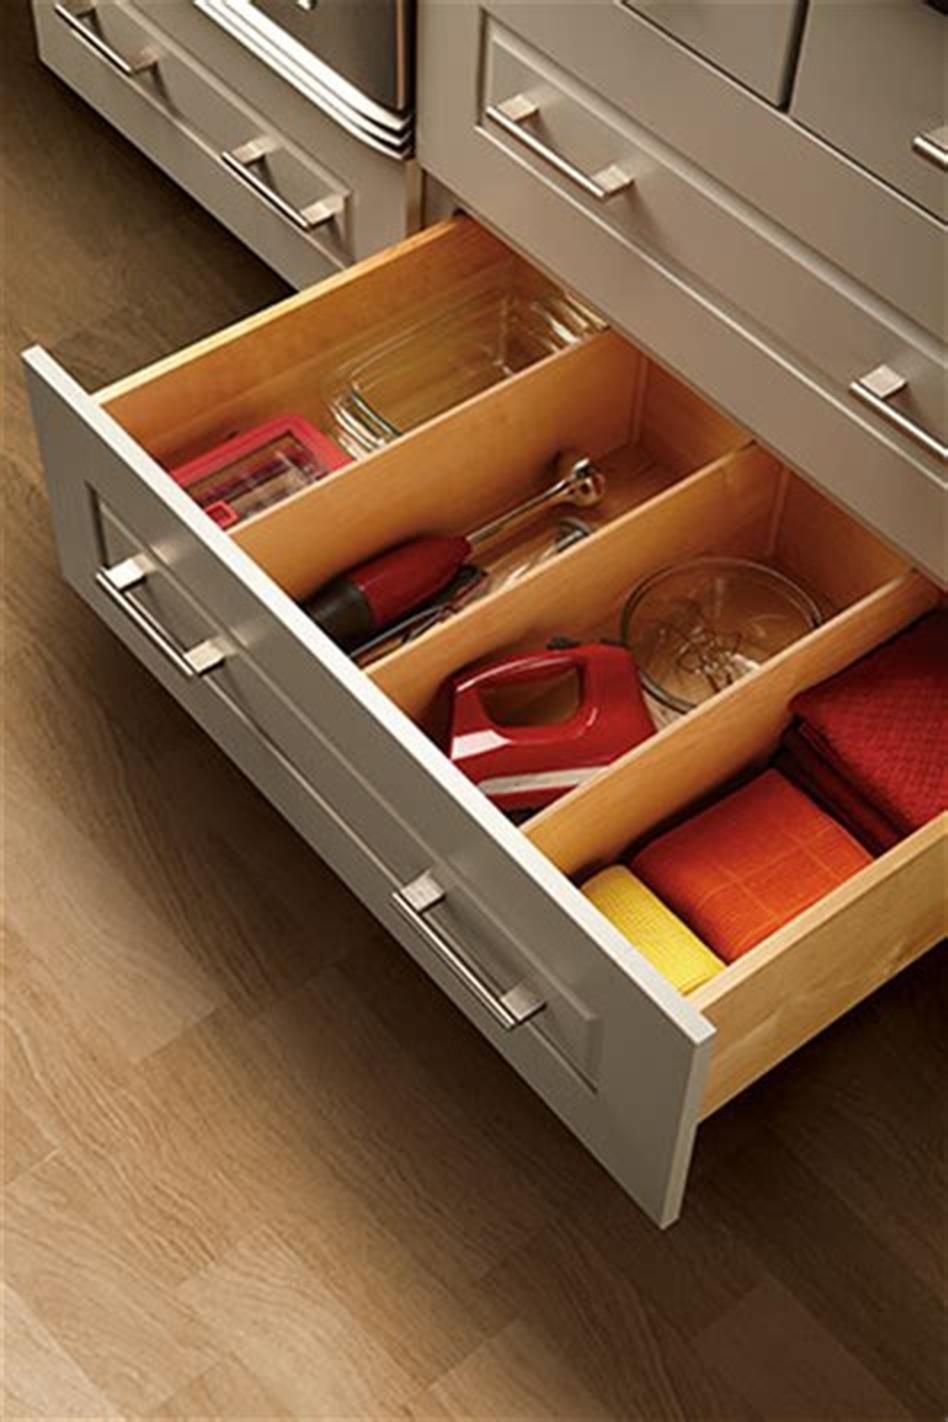 40 diy ideas kitchen cabinet organizers 35 organización on clever ideas for diy kitchen cabinet organization tips for organizers id=94647